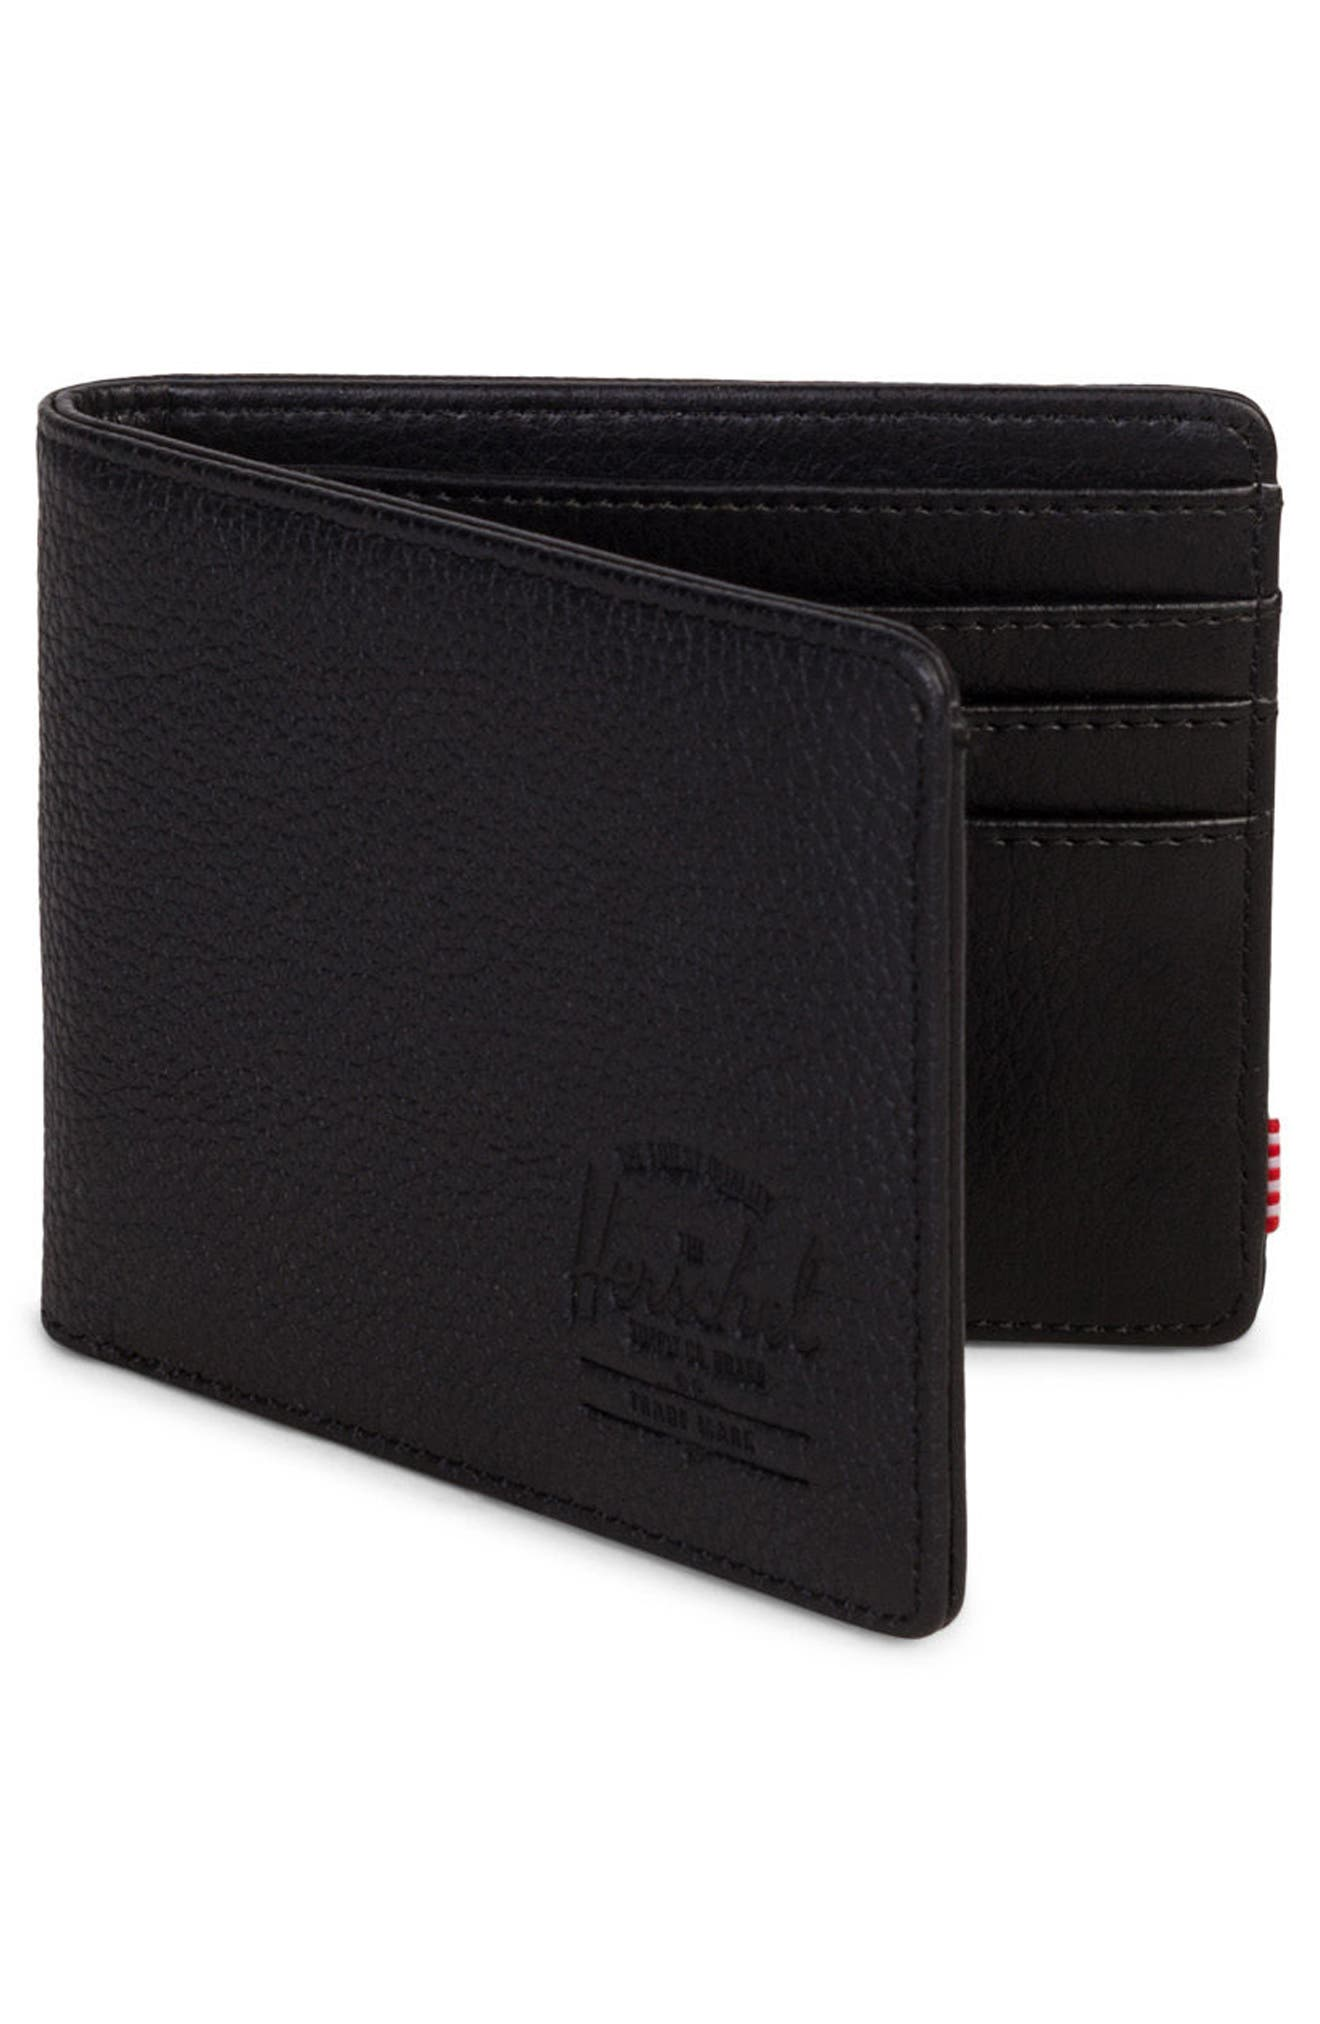 Hank Leather Wallet,                             Alternate thumbnail 3, color,                             005